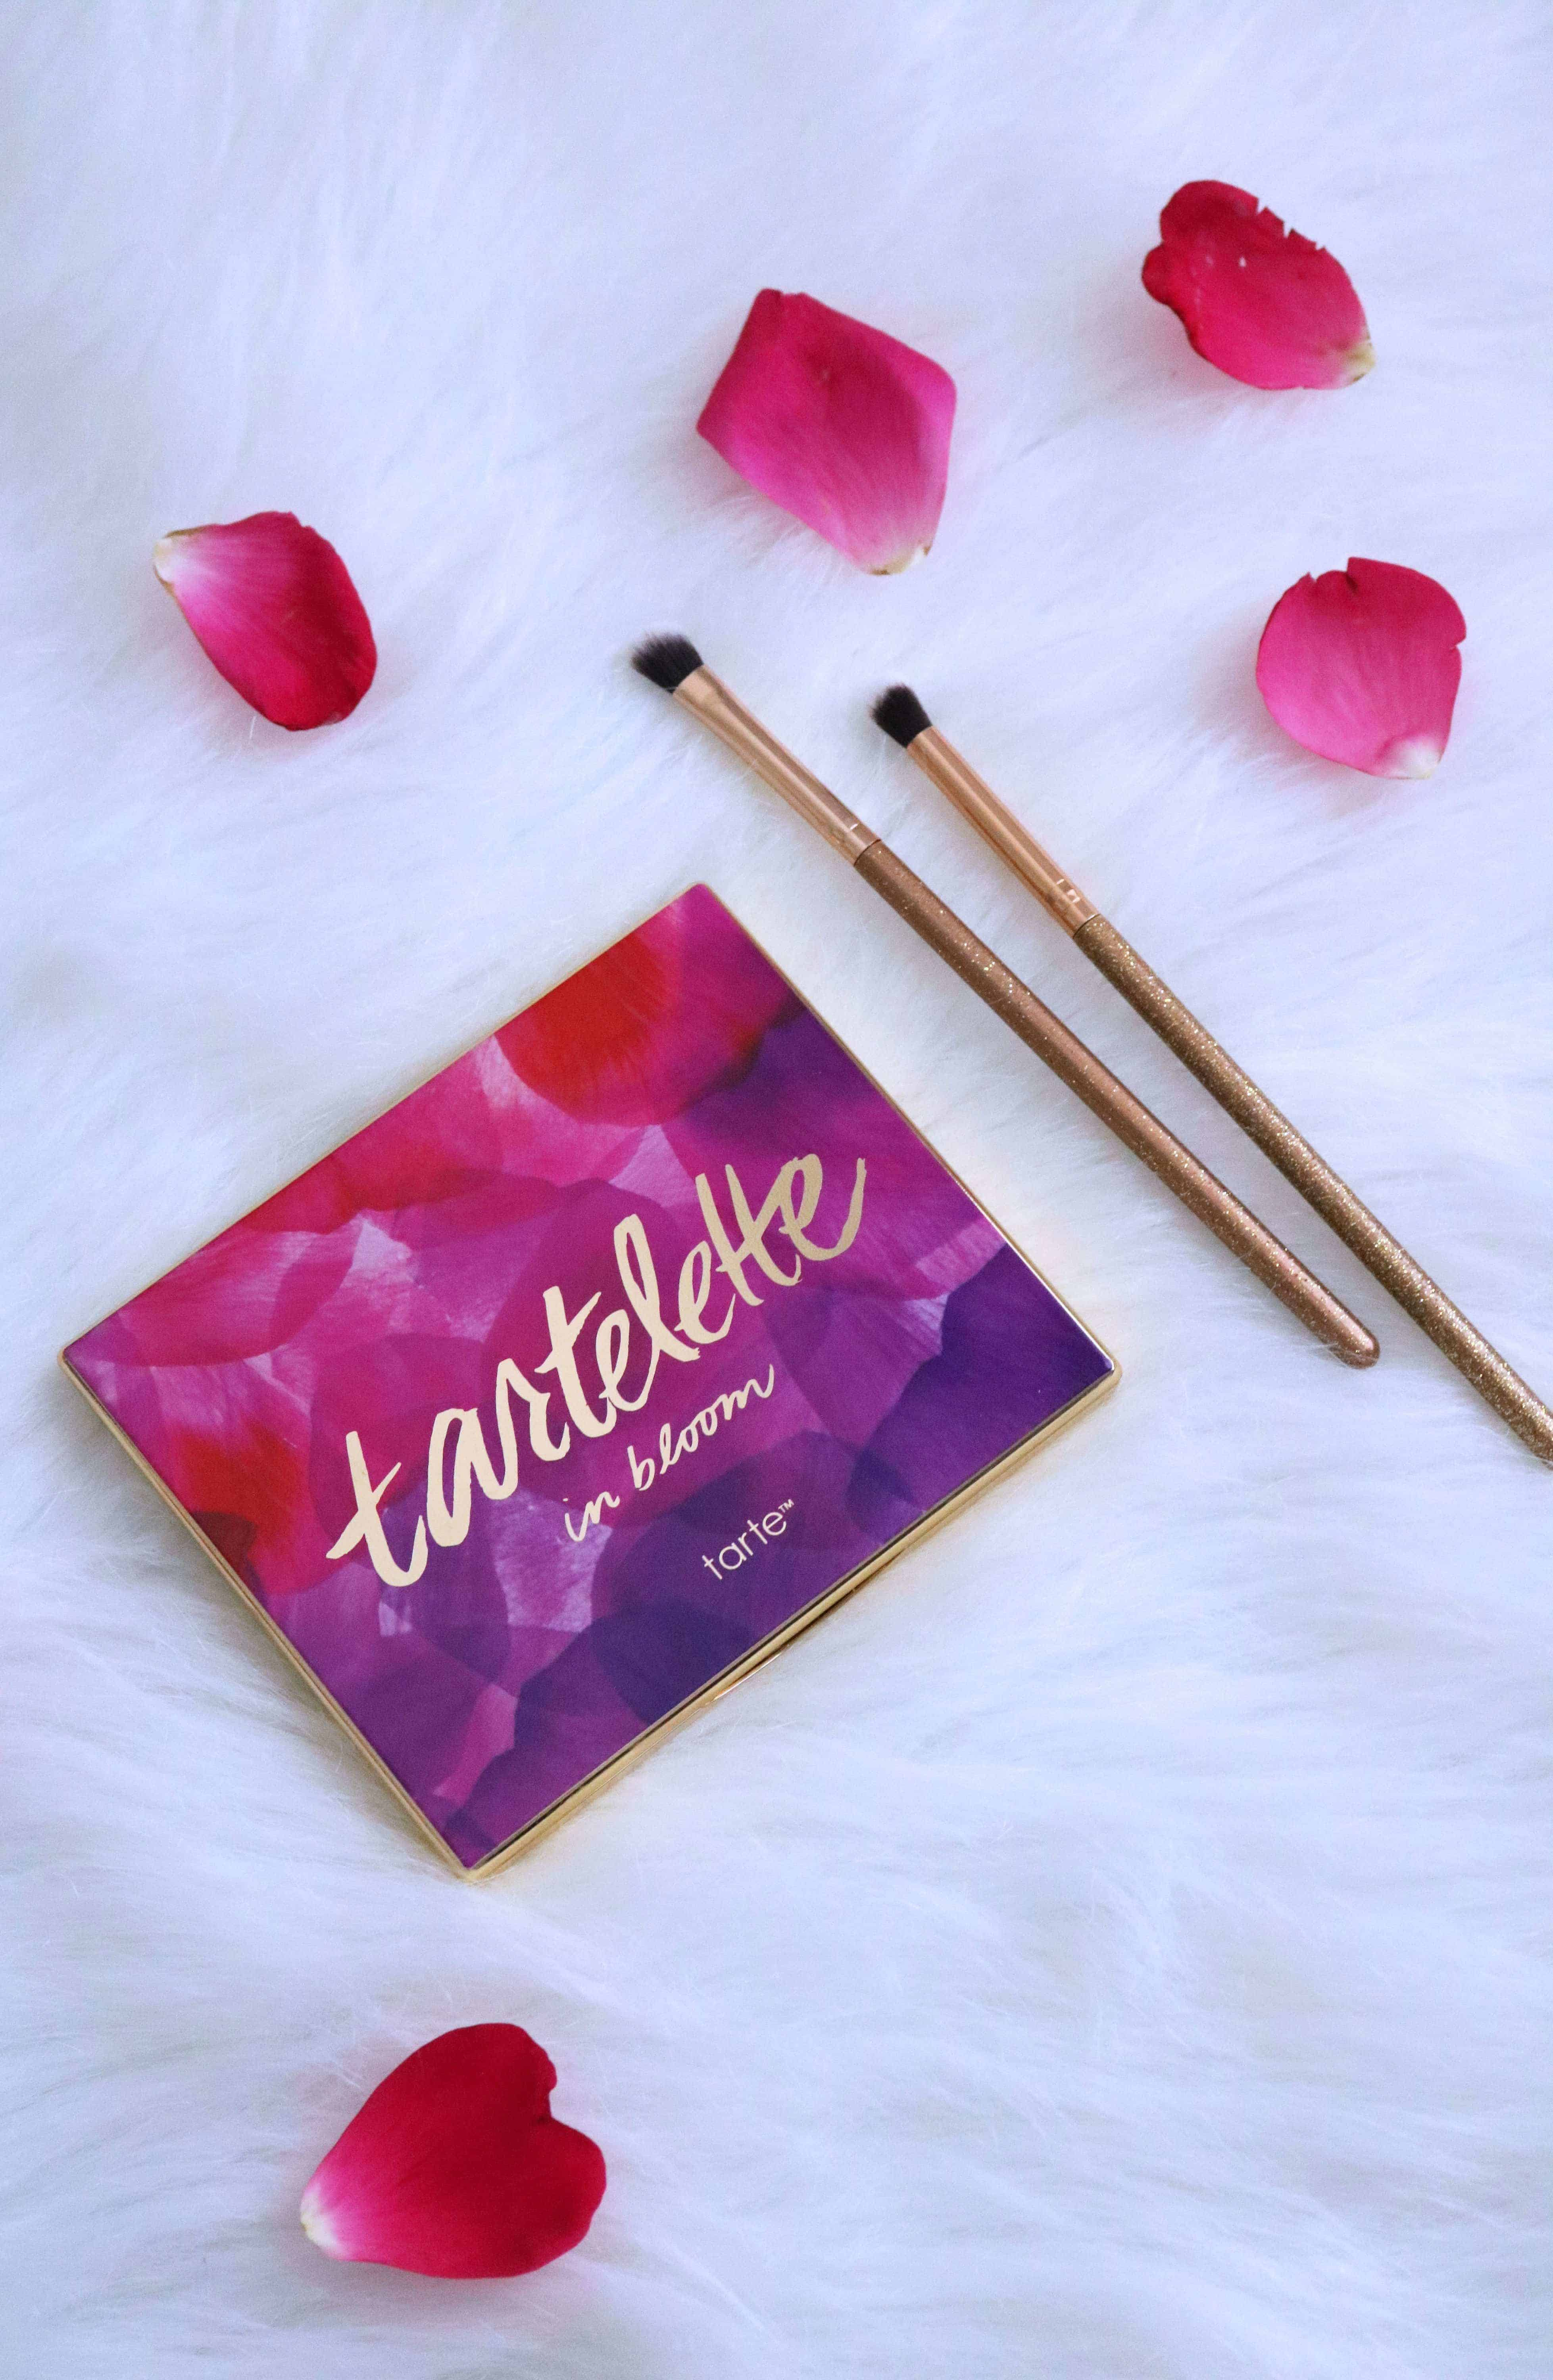 The Tarte Tartelette In Bloom Palette is seriously the only eyeshadow palette you'll need in your makeup collection! Check out my full review, swatches of all 12 shades, and a simple + pretty eye makeup look I created! #tarte #eyeshadowpalette #makeupreview